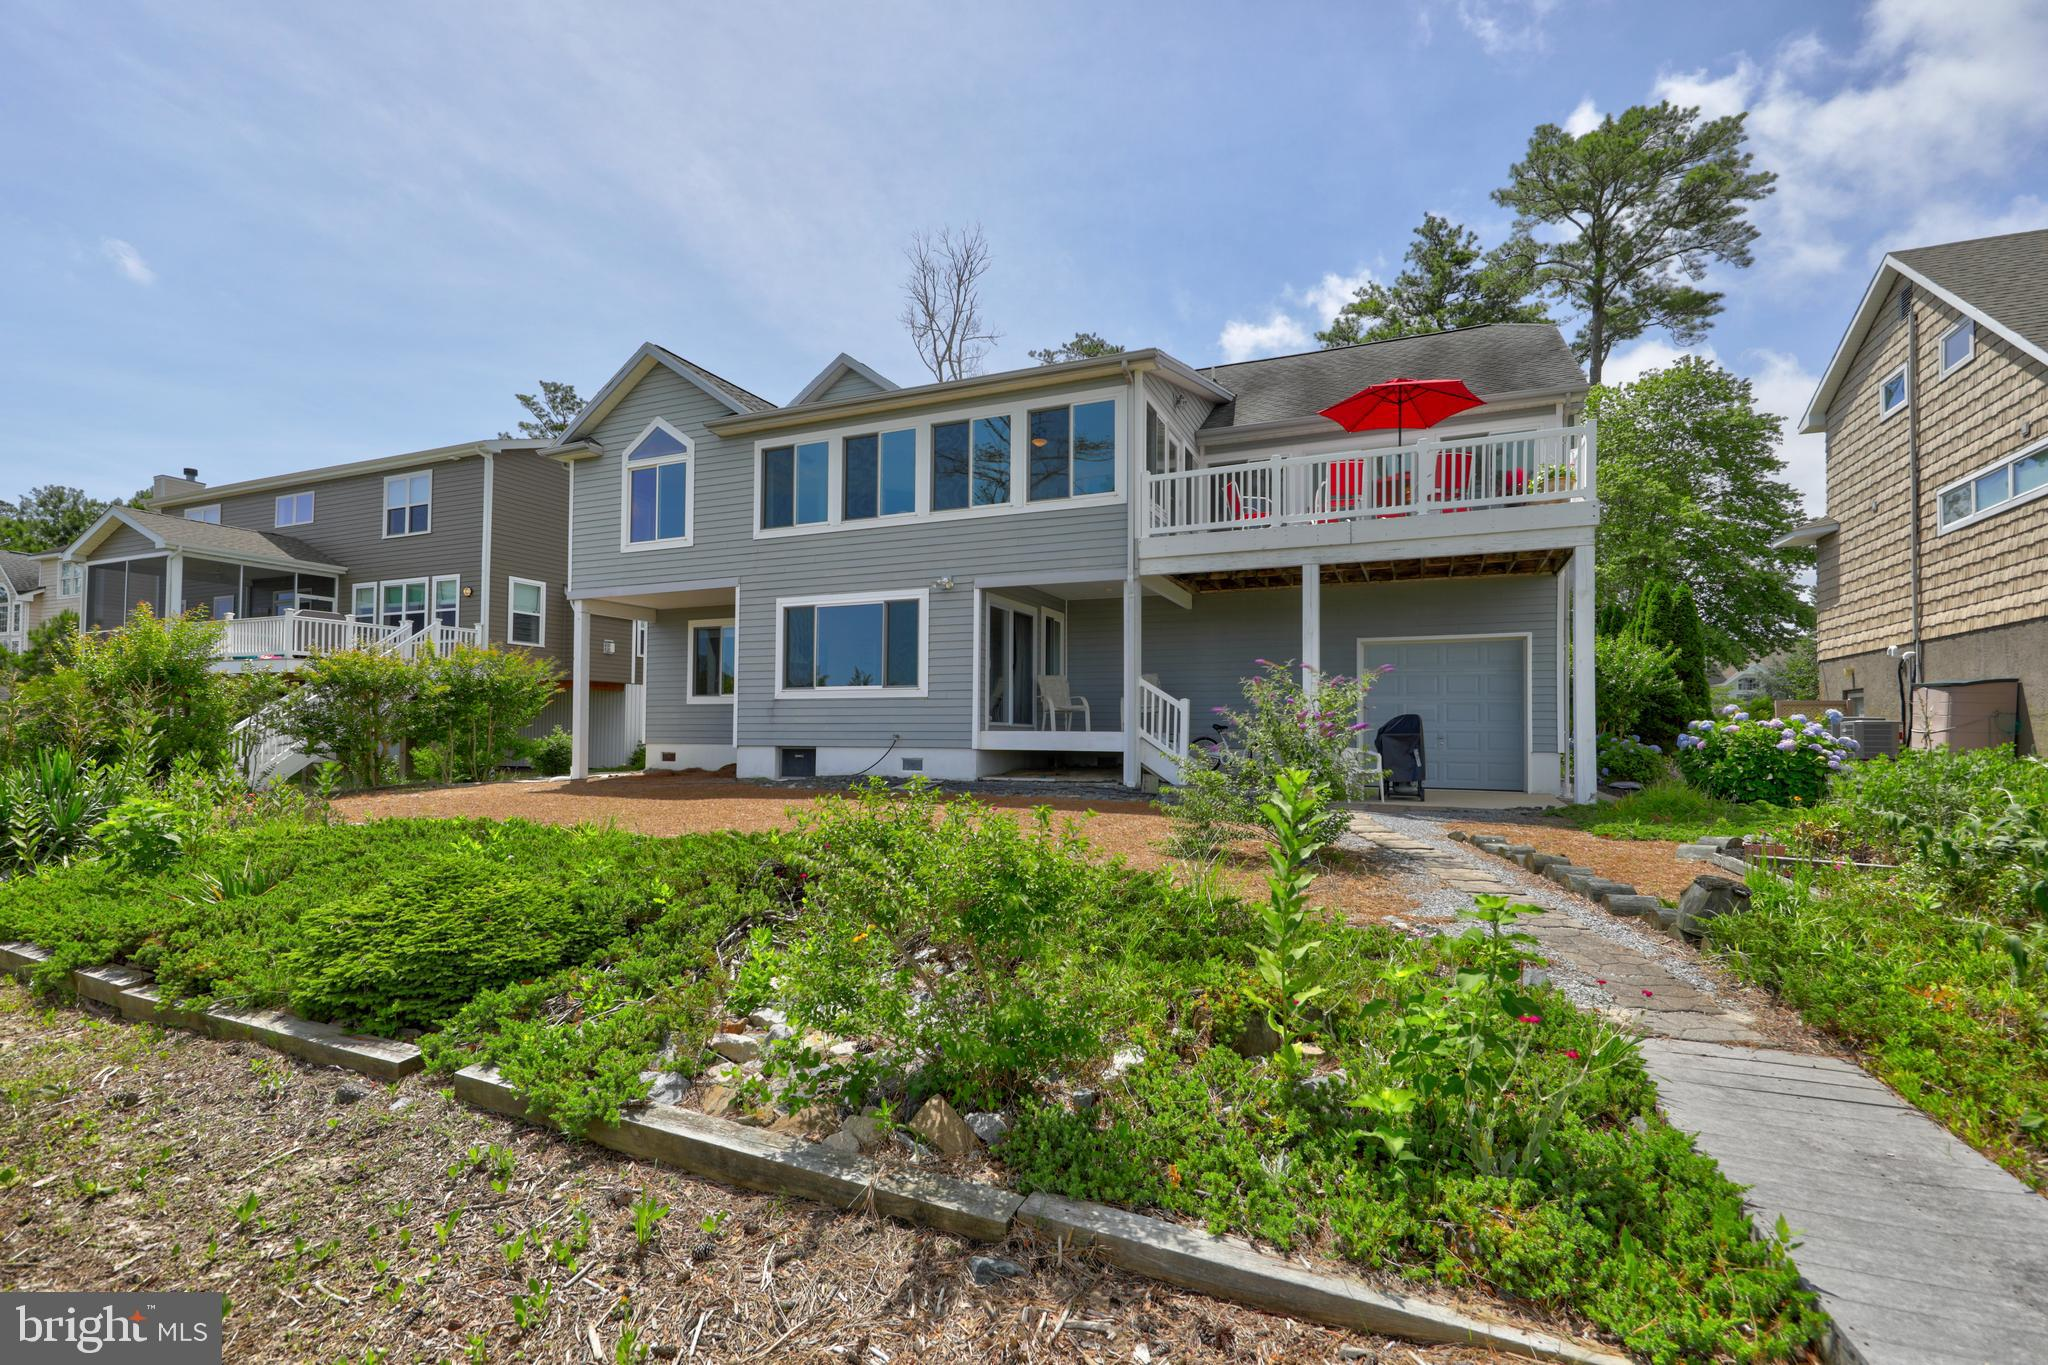 Custom built  Coastal Home in the  waterfront community of Cedar Landing in Ocean View. This meticulously maintained home is  located on a waterfront lot with a private dock and boat slip.  Panoramic views of the Whites Creek from the living room , sun room, master bedroom suite, decks, dining room and kitchen!  The  home is still occupied by the original owners . Enjoy  the beautiful backyard oasis, the ospreys and  the herons that  dwell in  THE  ISLAND of Cedar Landing.  Home features  4 bedrooms and 4 baths. First floor of the home is set up for an  in-law suite complete with 2 bedrooms,  kitchen area, living  room and laundry with utility sink.  Take the ELEVATOR to the Second Floor where you will find  a sunny open floor plan  with vaulted ceilings, fireplace with built-ins,  hardwood floors, sunroom and deck  that  has  water views in every direction.   The owner suite includes a  large bedroom with a sitting area, large walk-in closet and owners' bathroom with a jetted tub and shower.  Owner's suite and 4th spacious bedroom are located to the right as you come in the large entry way from the front entrance of the home. Dock your boat or jet ski, put in your crab traps for crab feast later on. Relax on the decks or in the  sun room and enjoy beautiful sunsets in your new Salt Life!